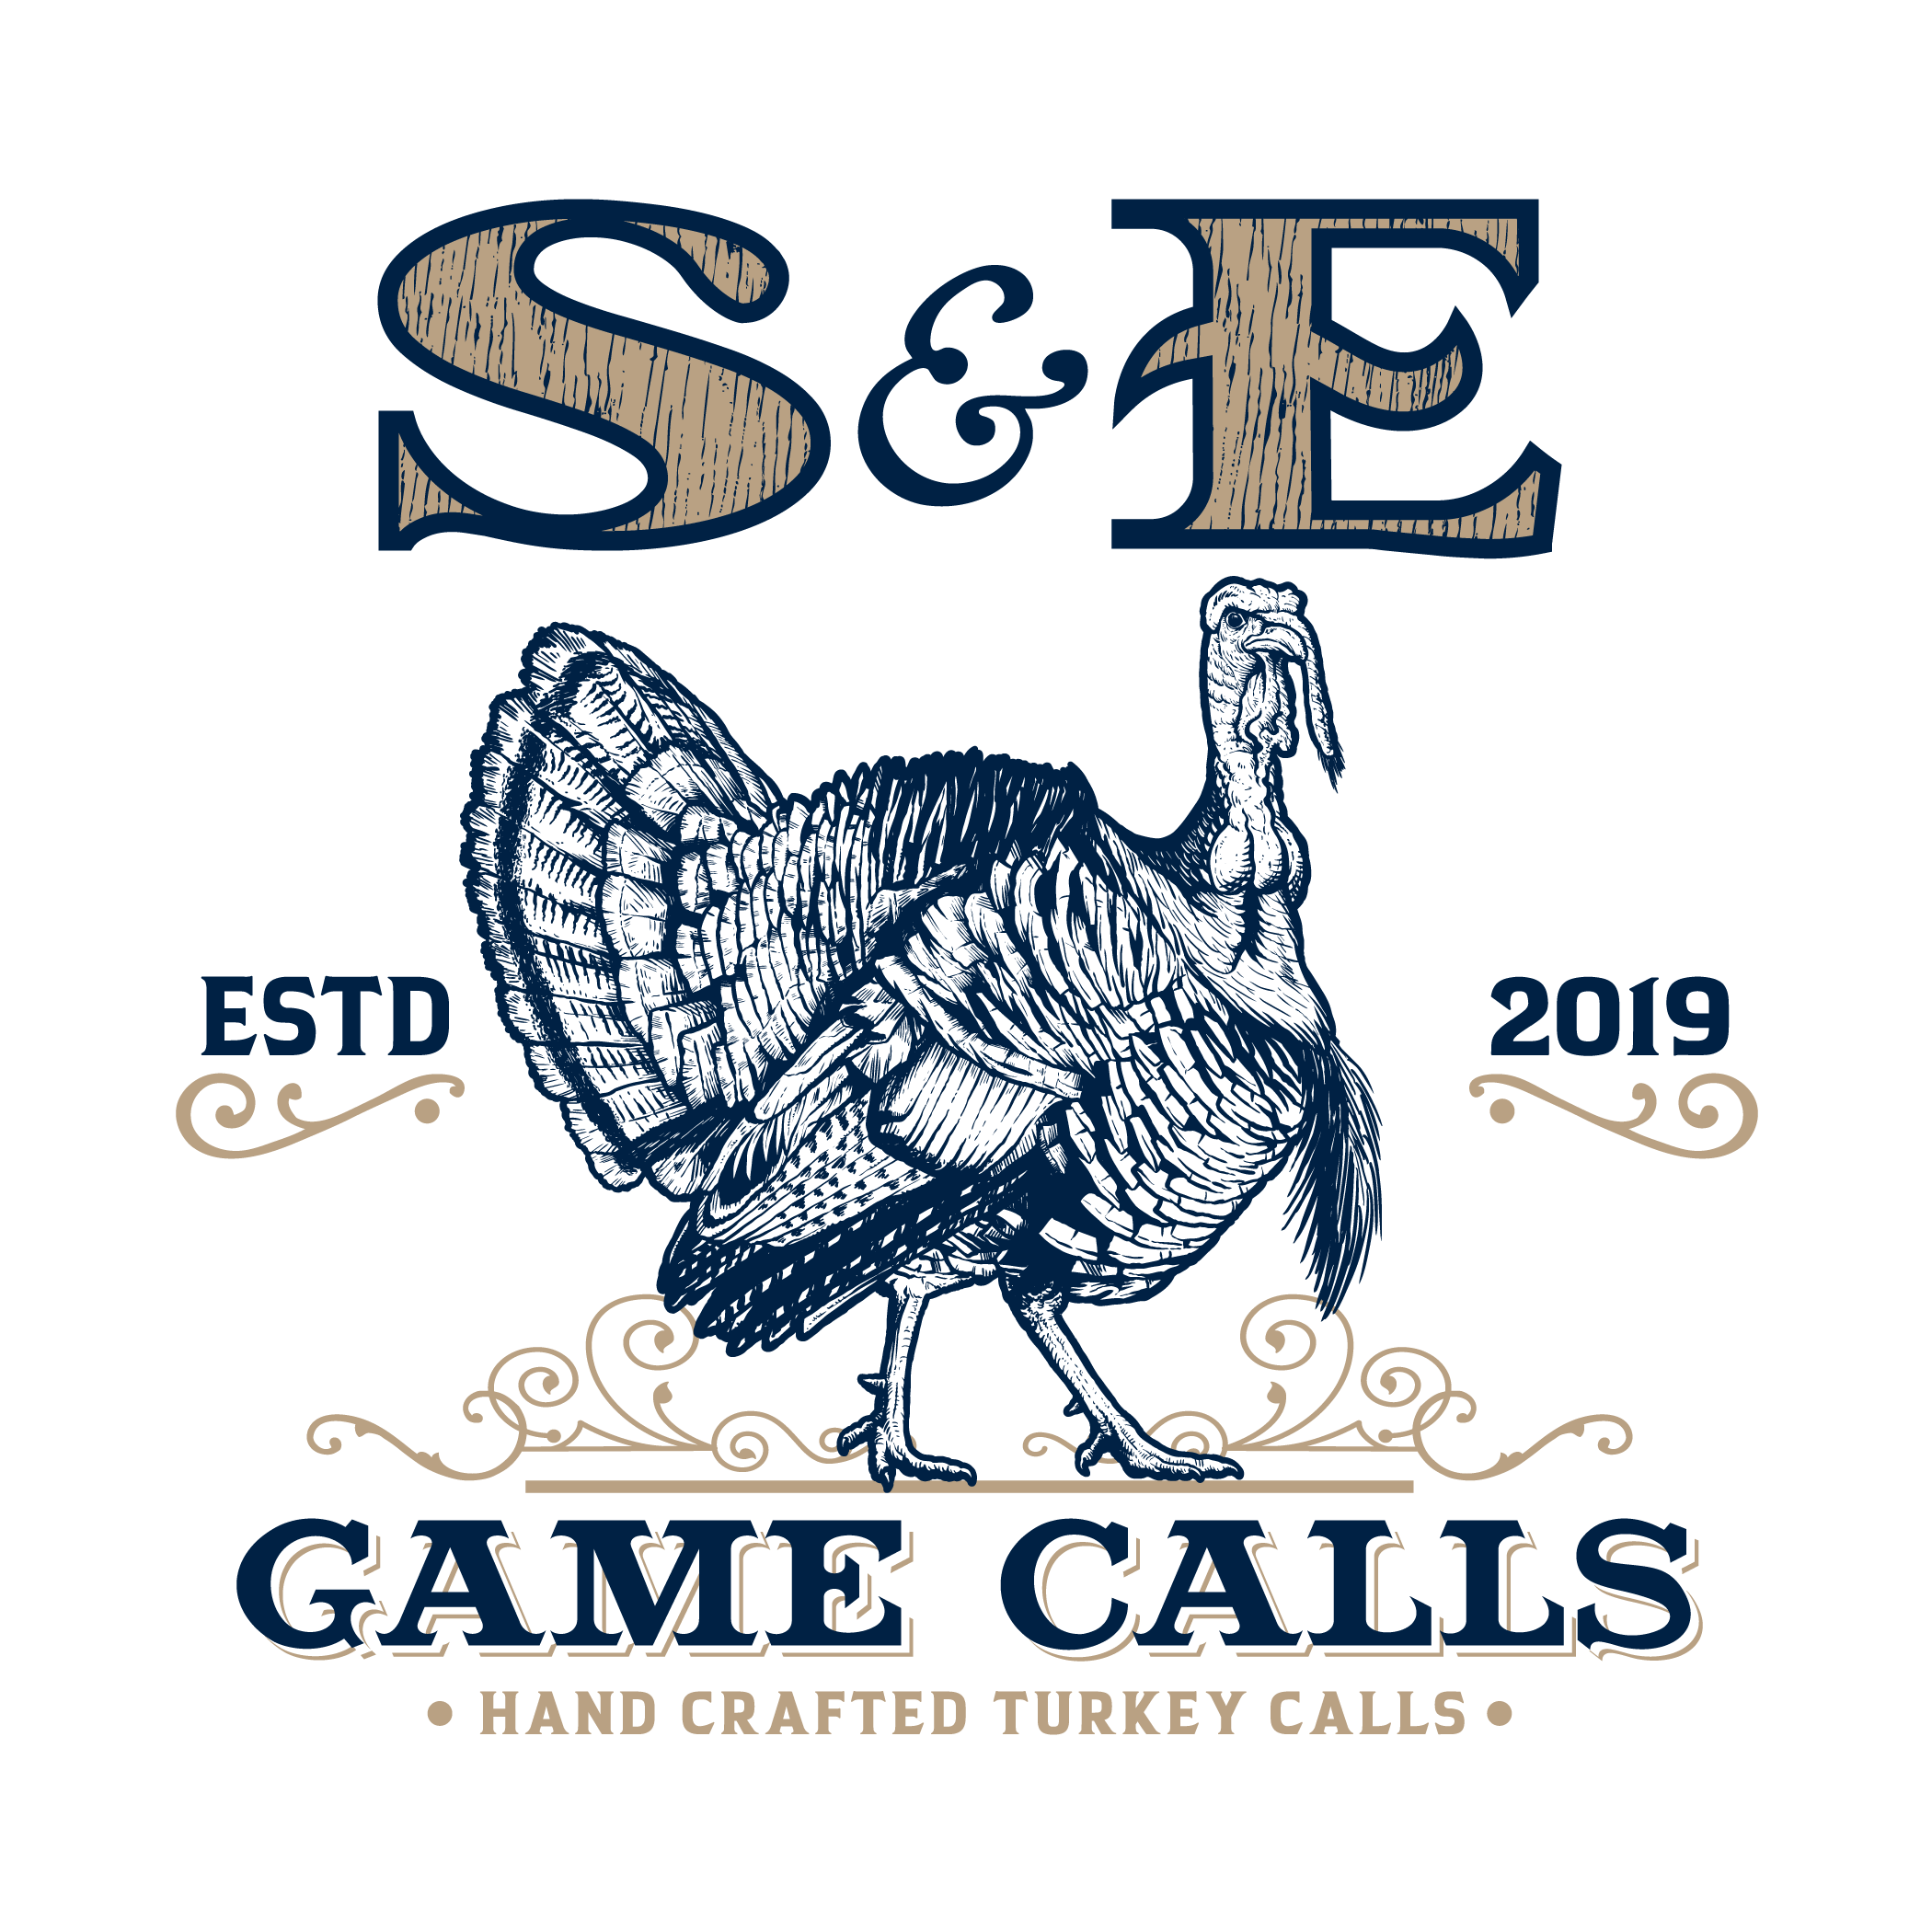 I need a logo for a turkey call making business.